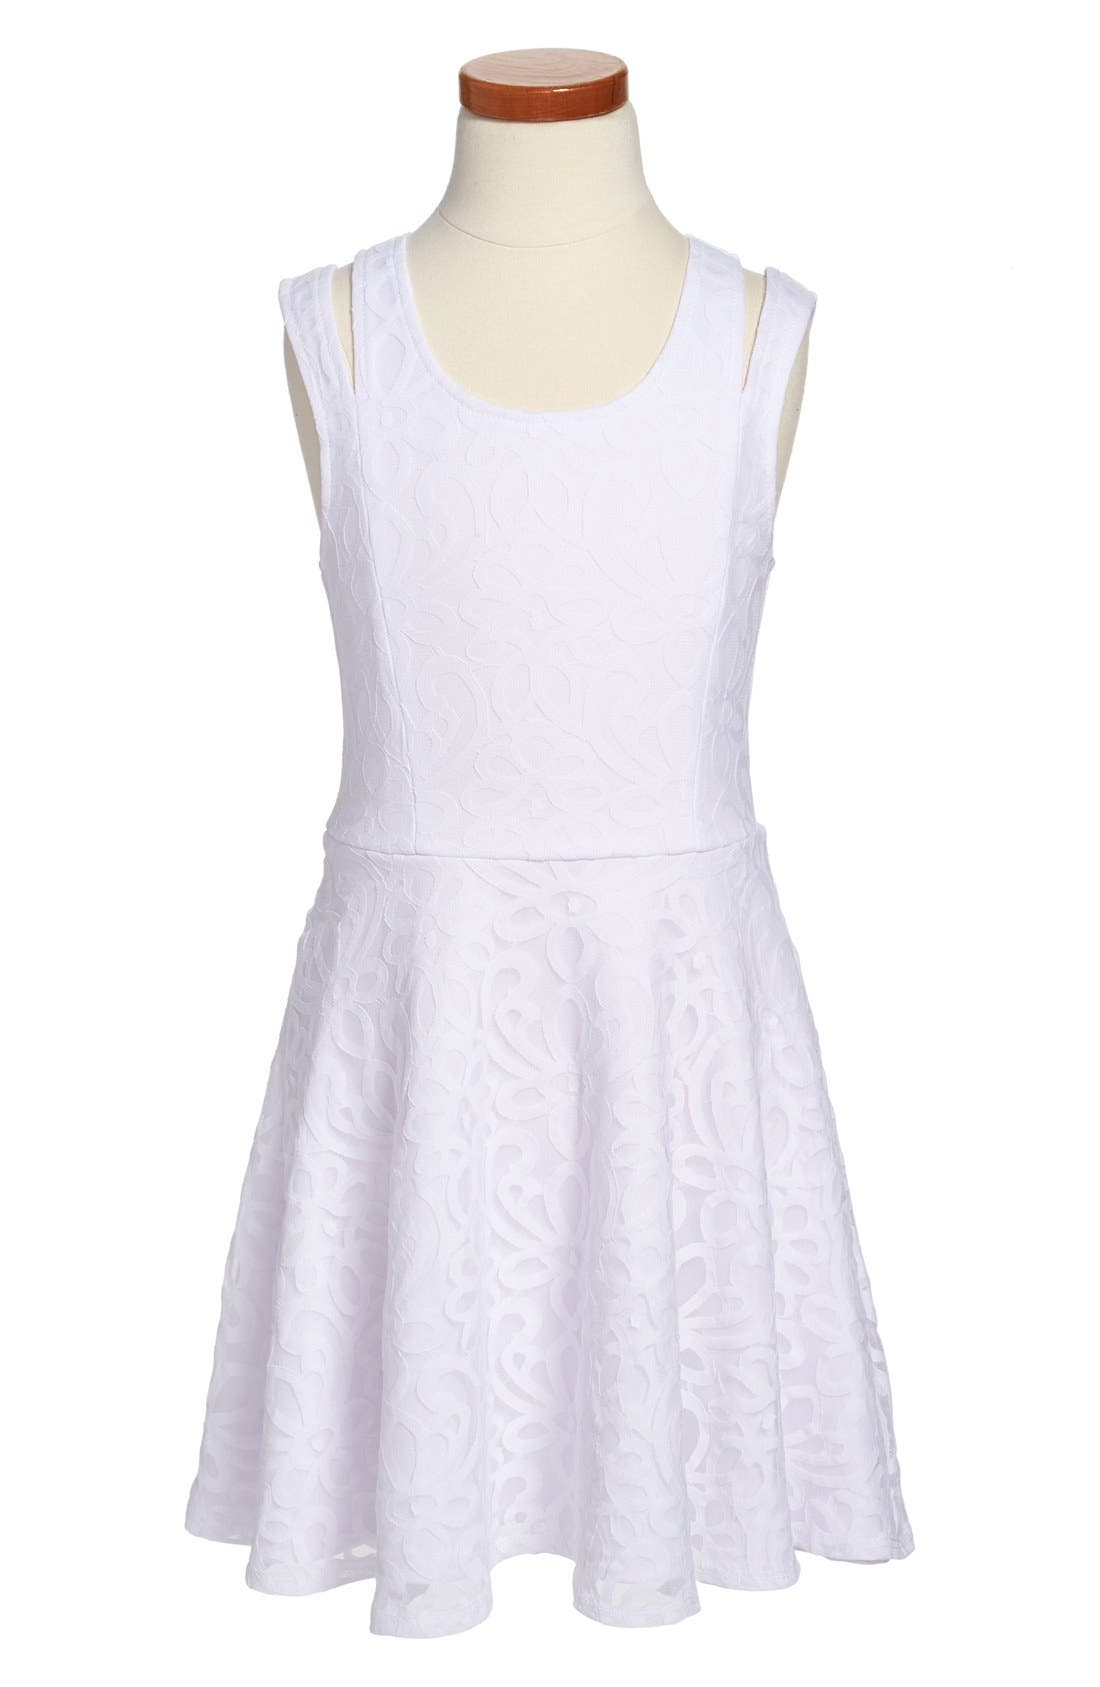 Main Image - Sally Miller 'Soutache' Sleeveless Dress (Big Girls)